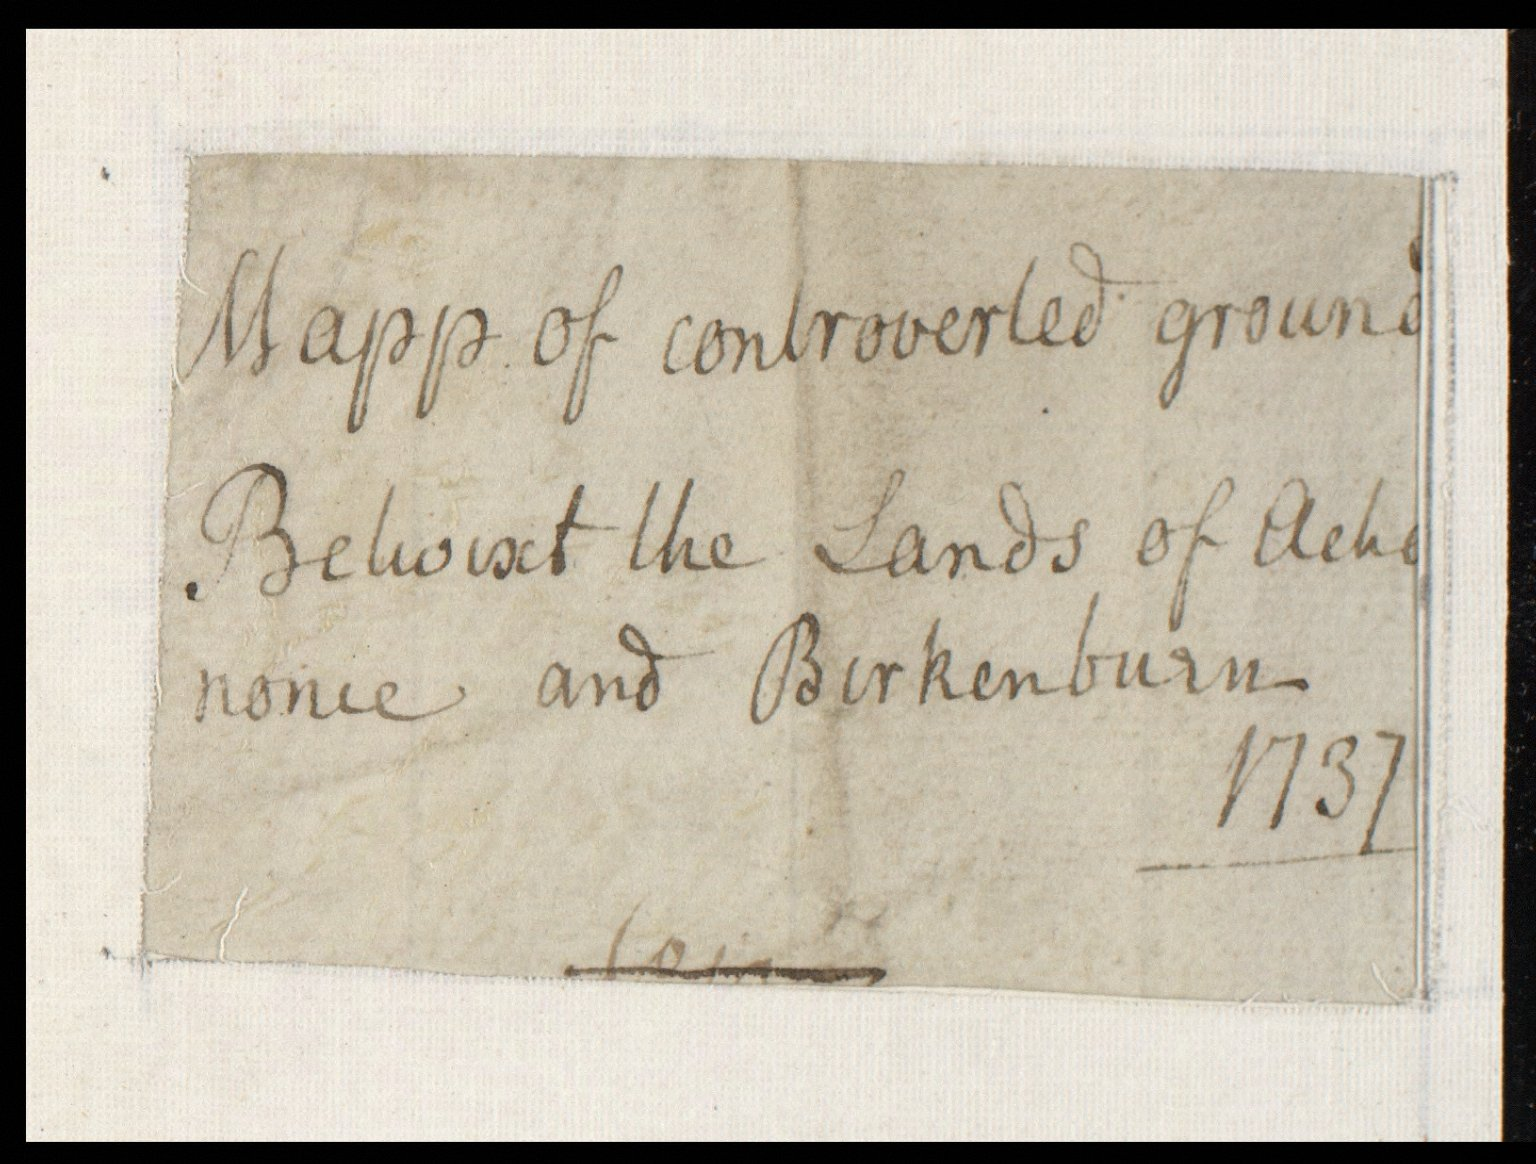 Mapp of controverted ground Betwixt the Lands of Achoynonie and Birkenburn 1737 [2 of 2]